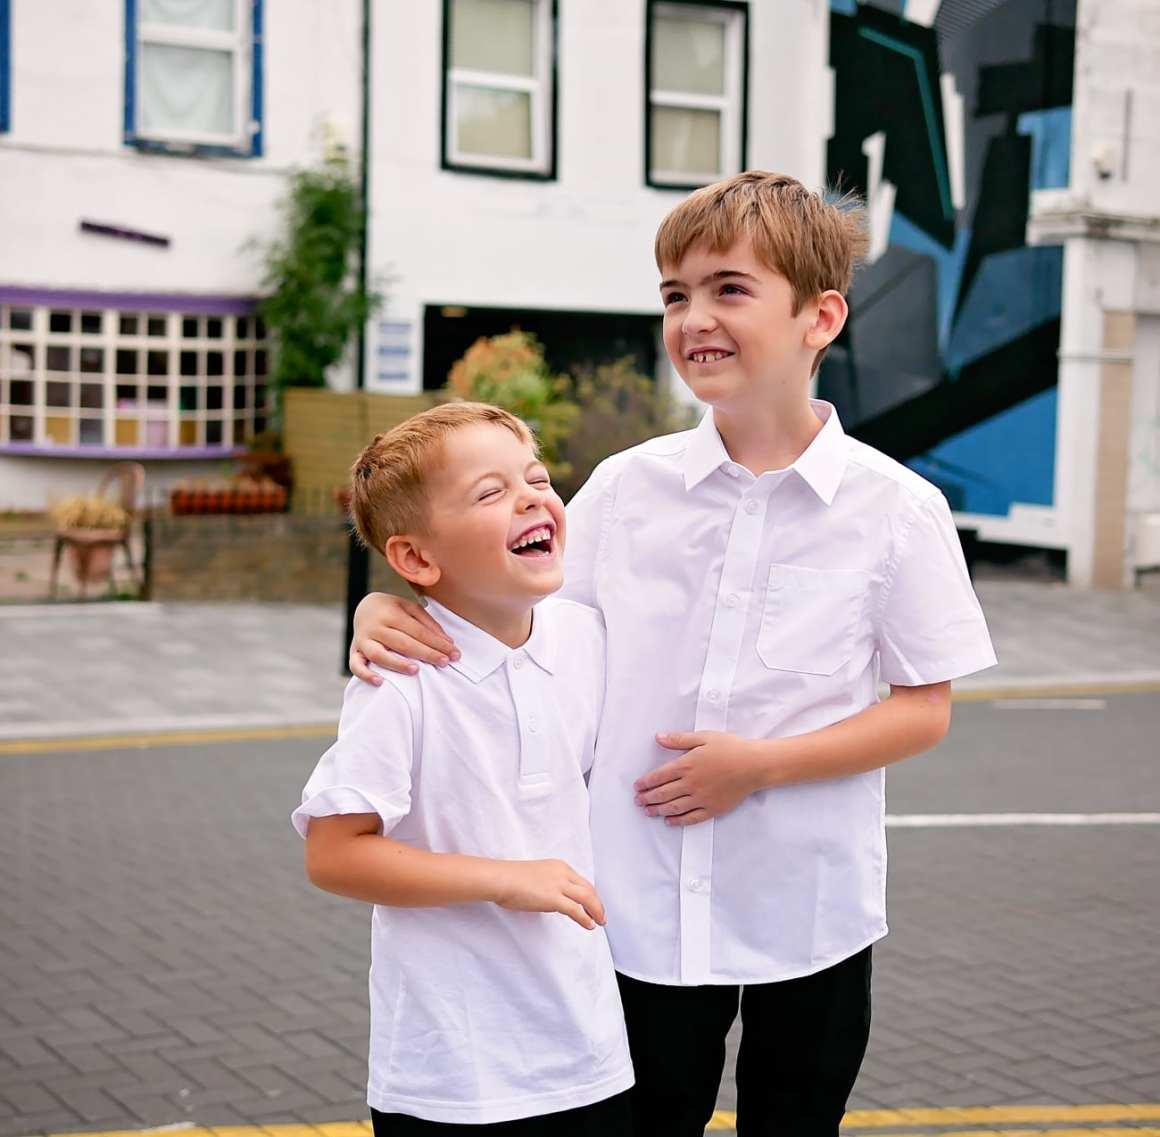 f&f tesco school uniform